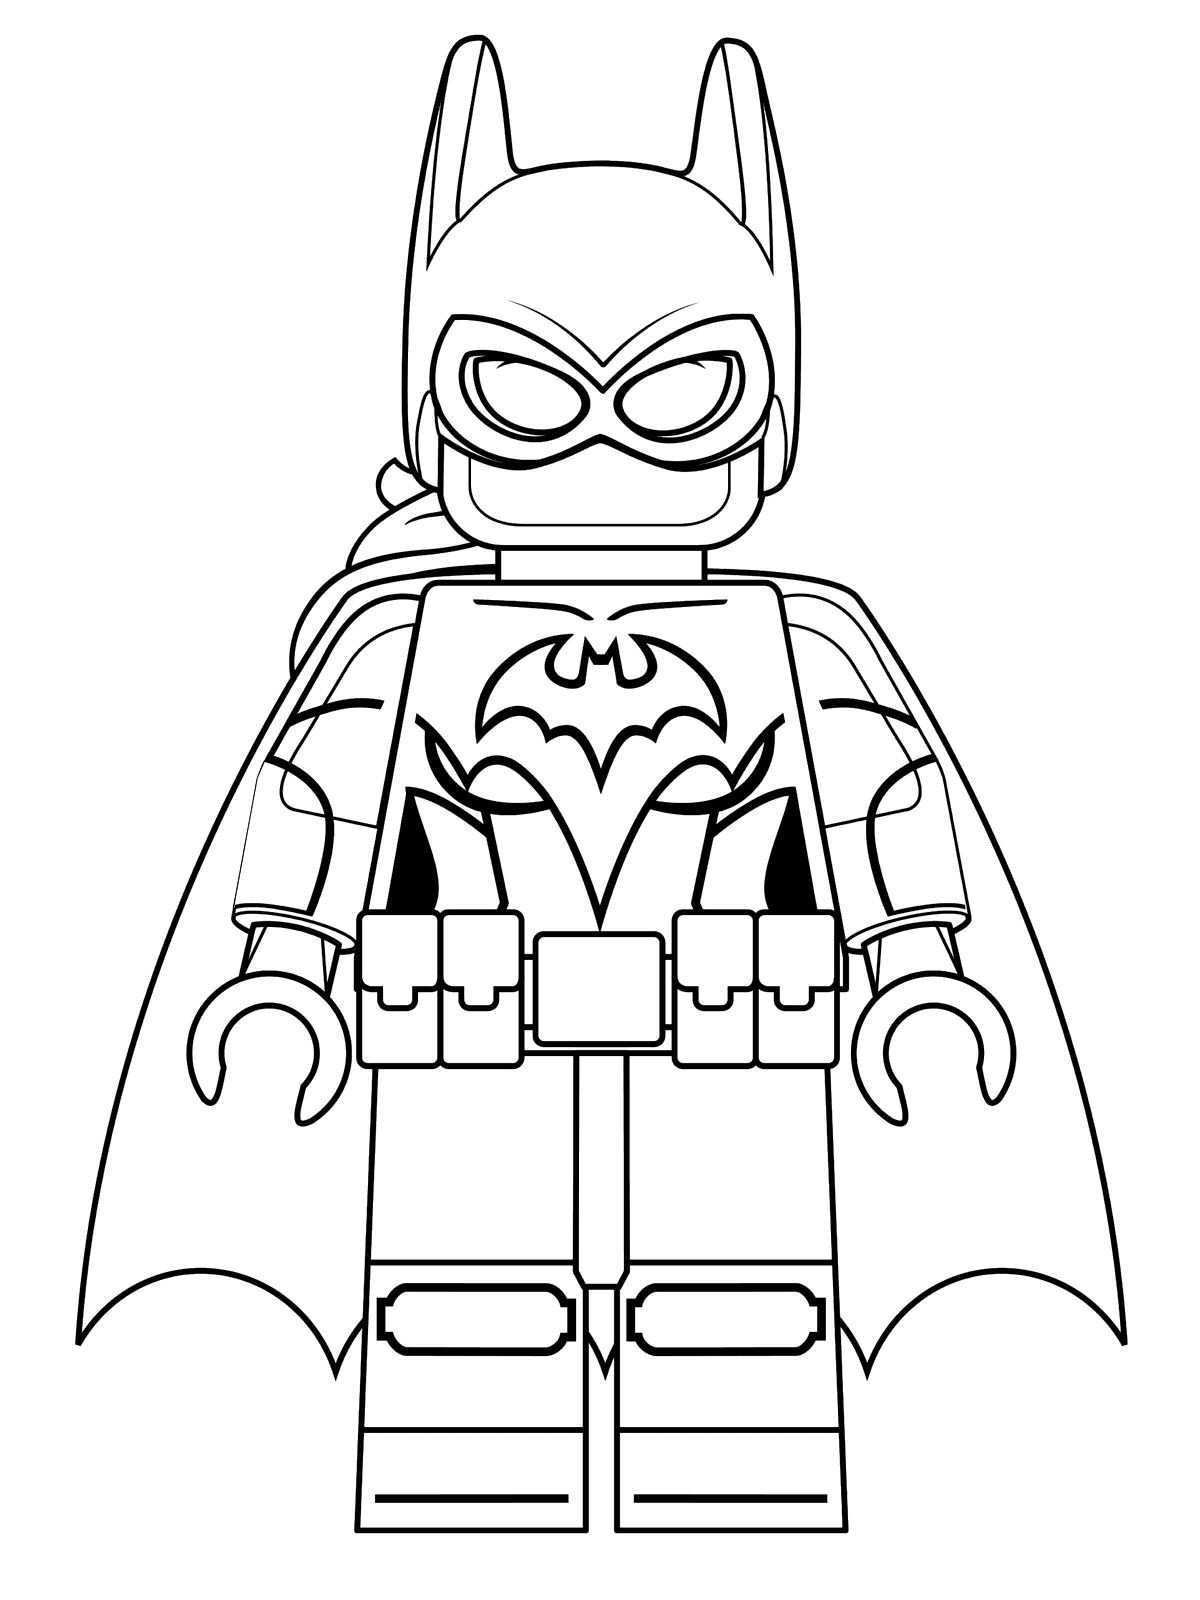 Print Free Lego Batman Coloring Pages Superhero Coloring Superhero Coloring Pages Lego Coloring Pages